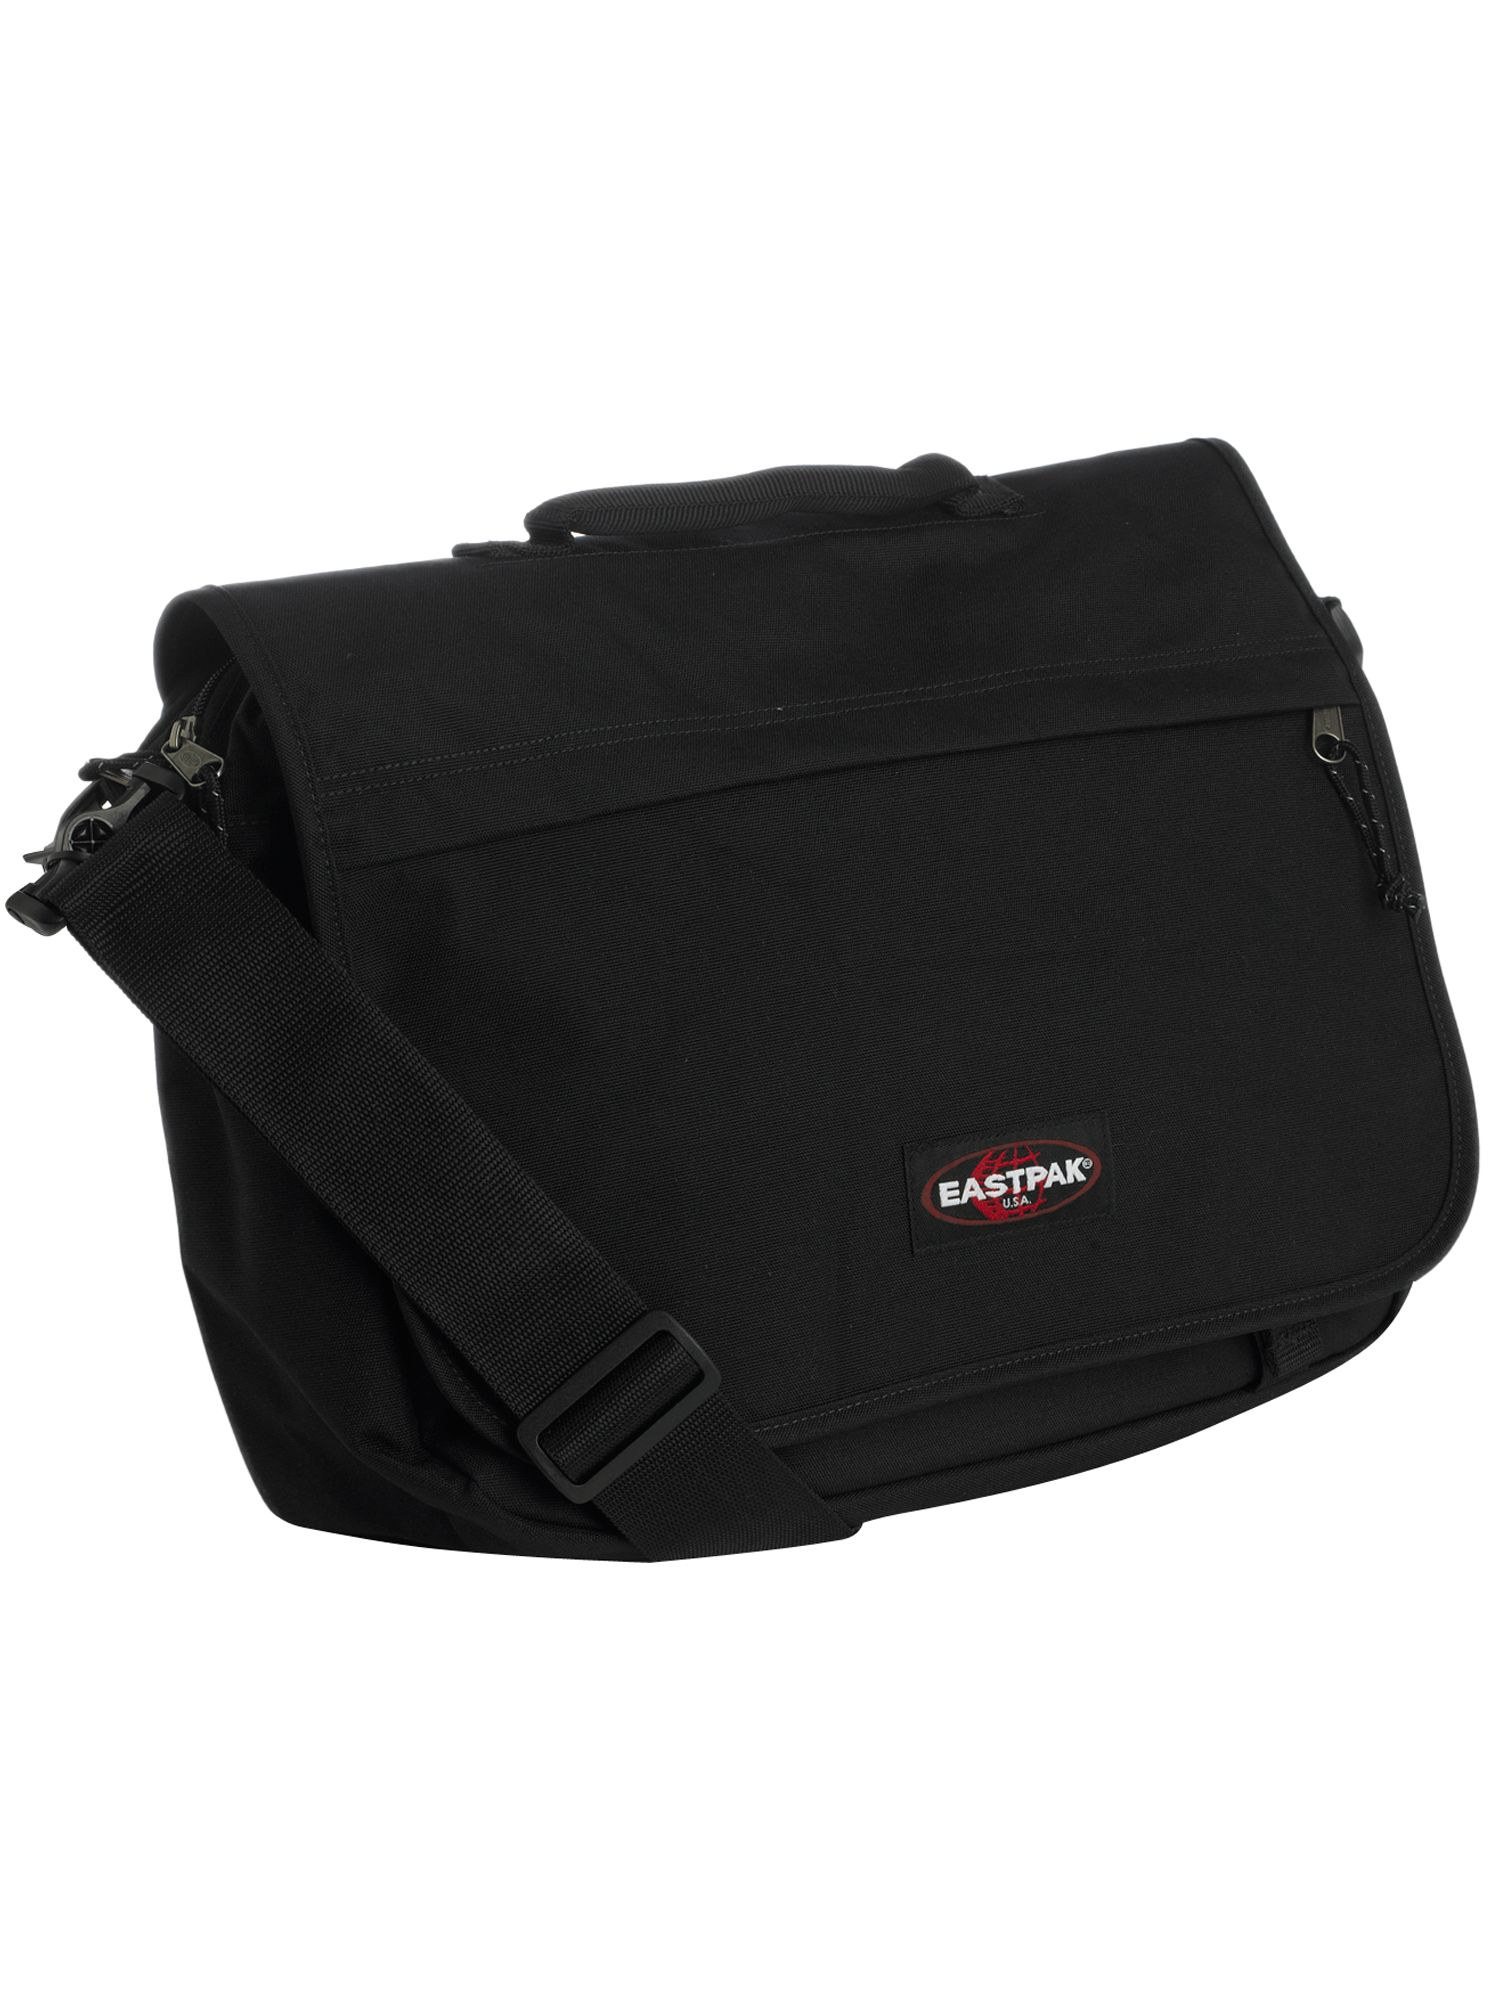 Black Laptop Messenger